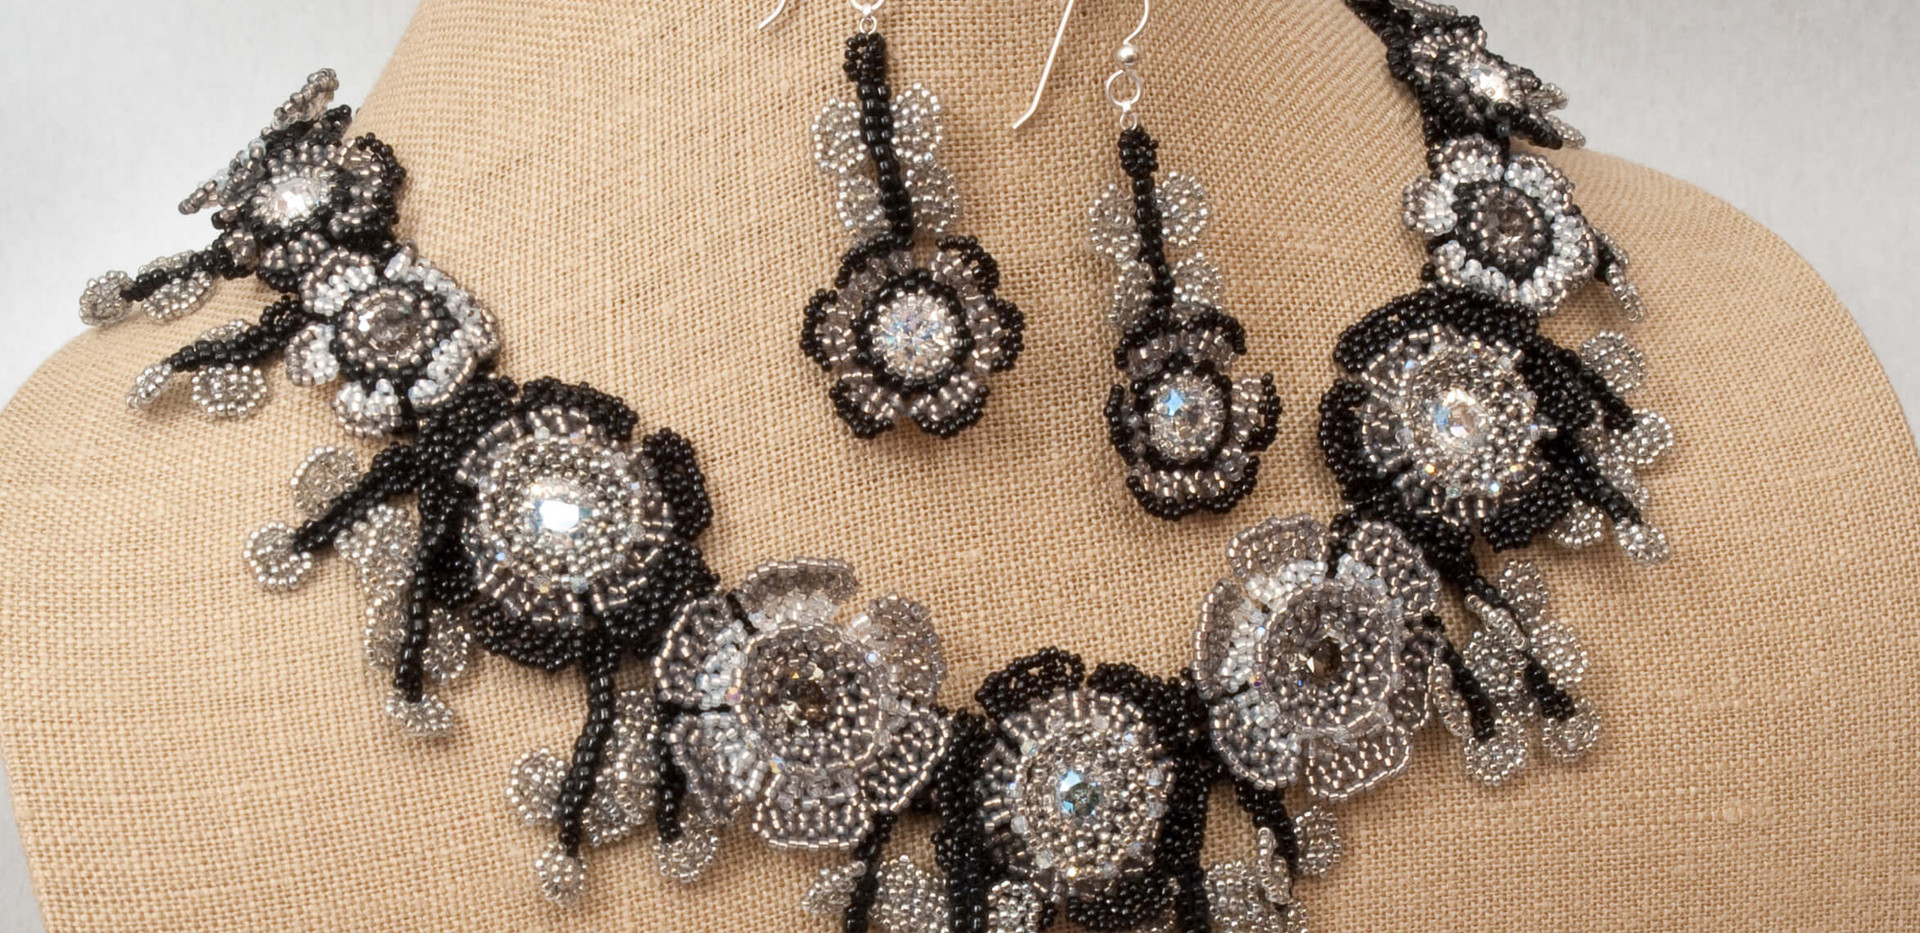 Flowers of The Field Necklace and Earrings in Crystal Moonlight and Black Diamond